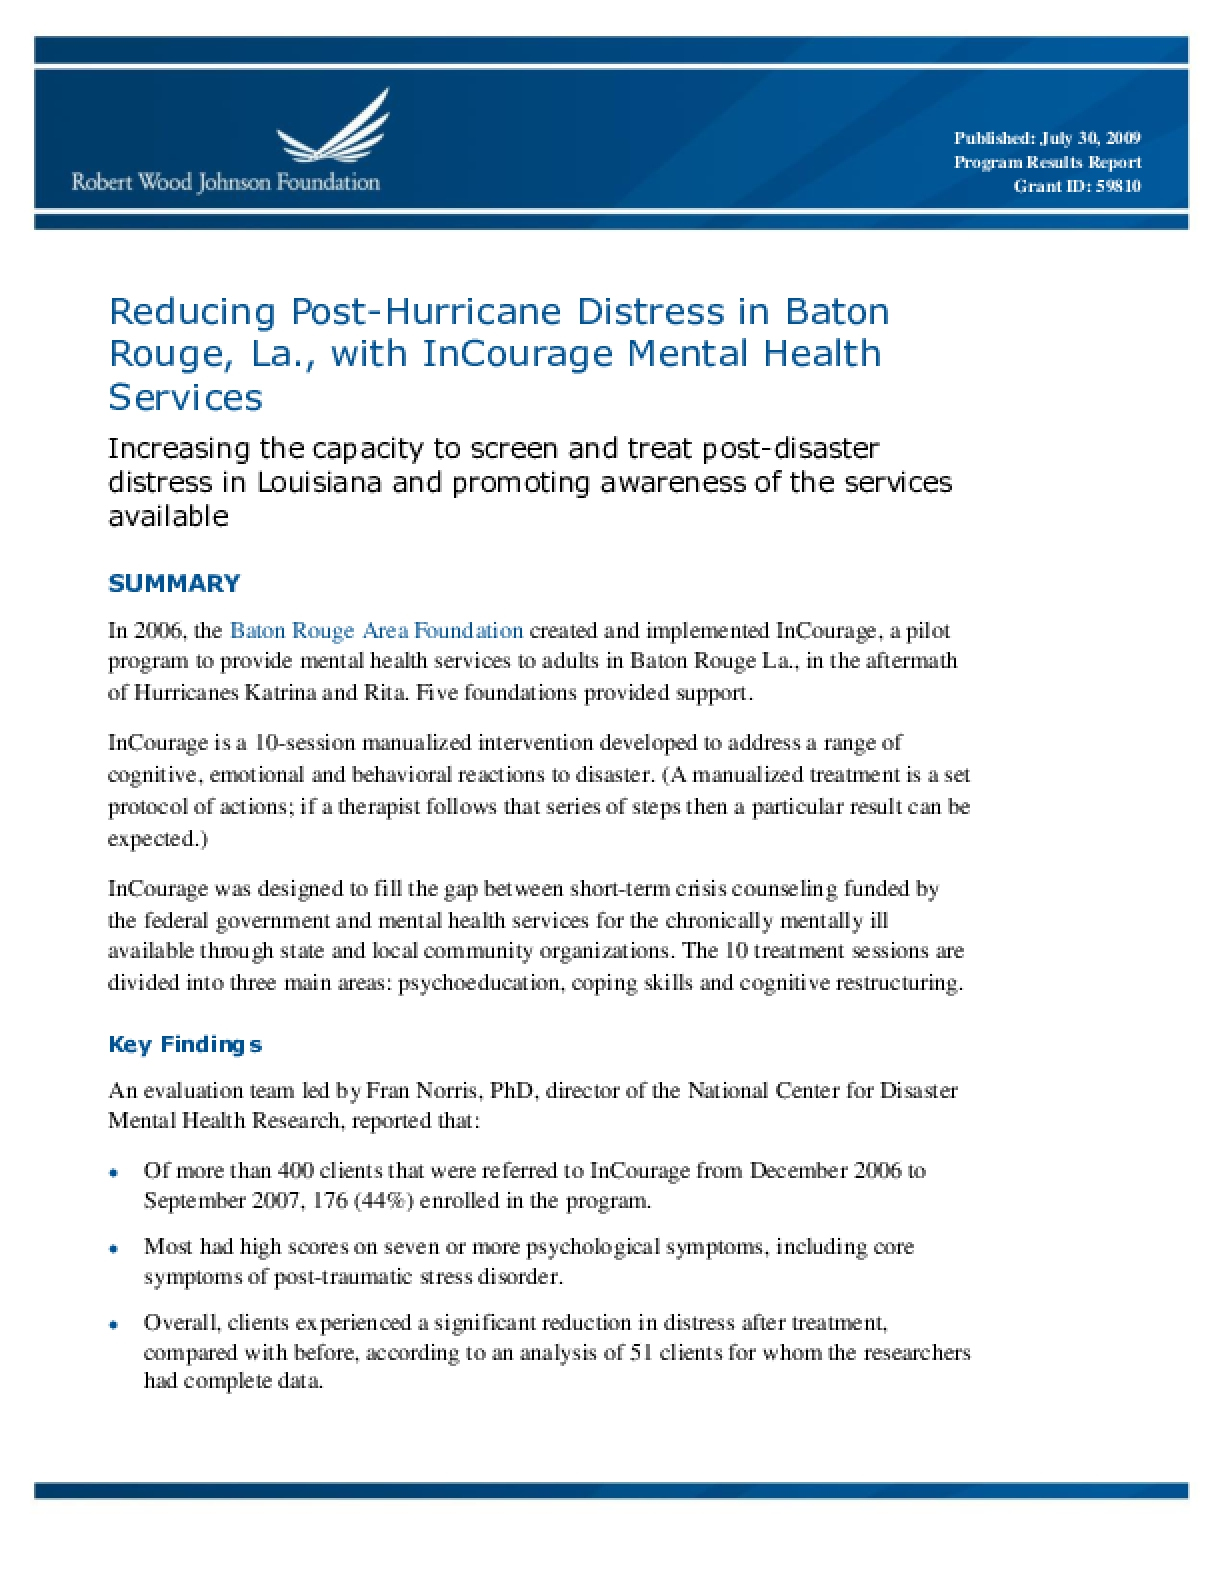 Reducing Post-Hurricane Distress in Baton Rouge, La., with InCourage Mental Health Services